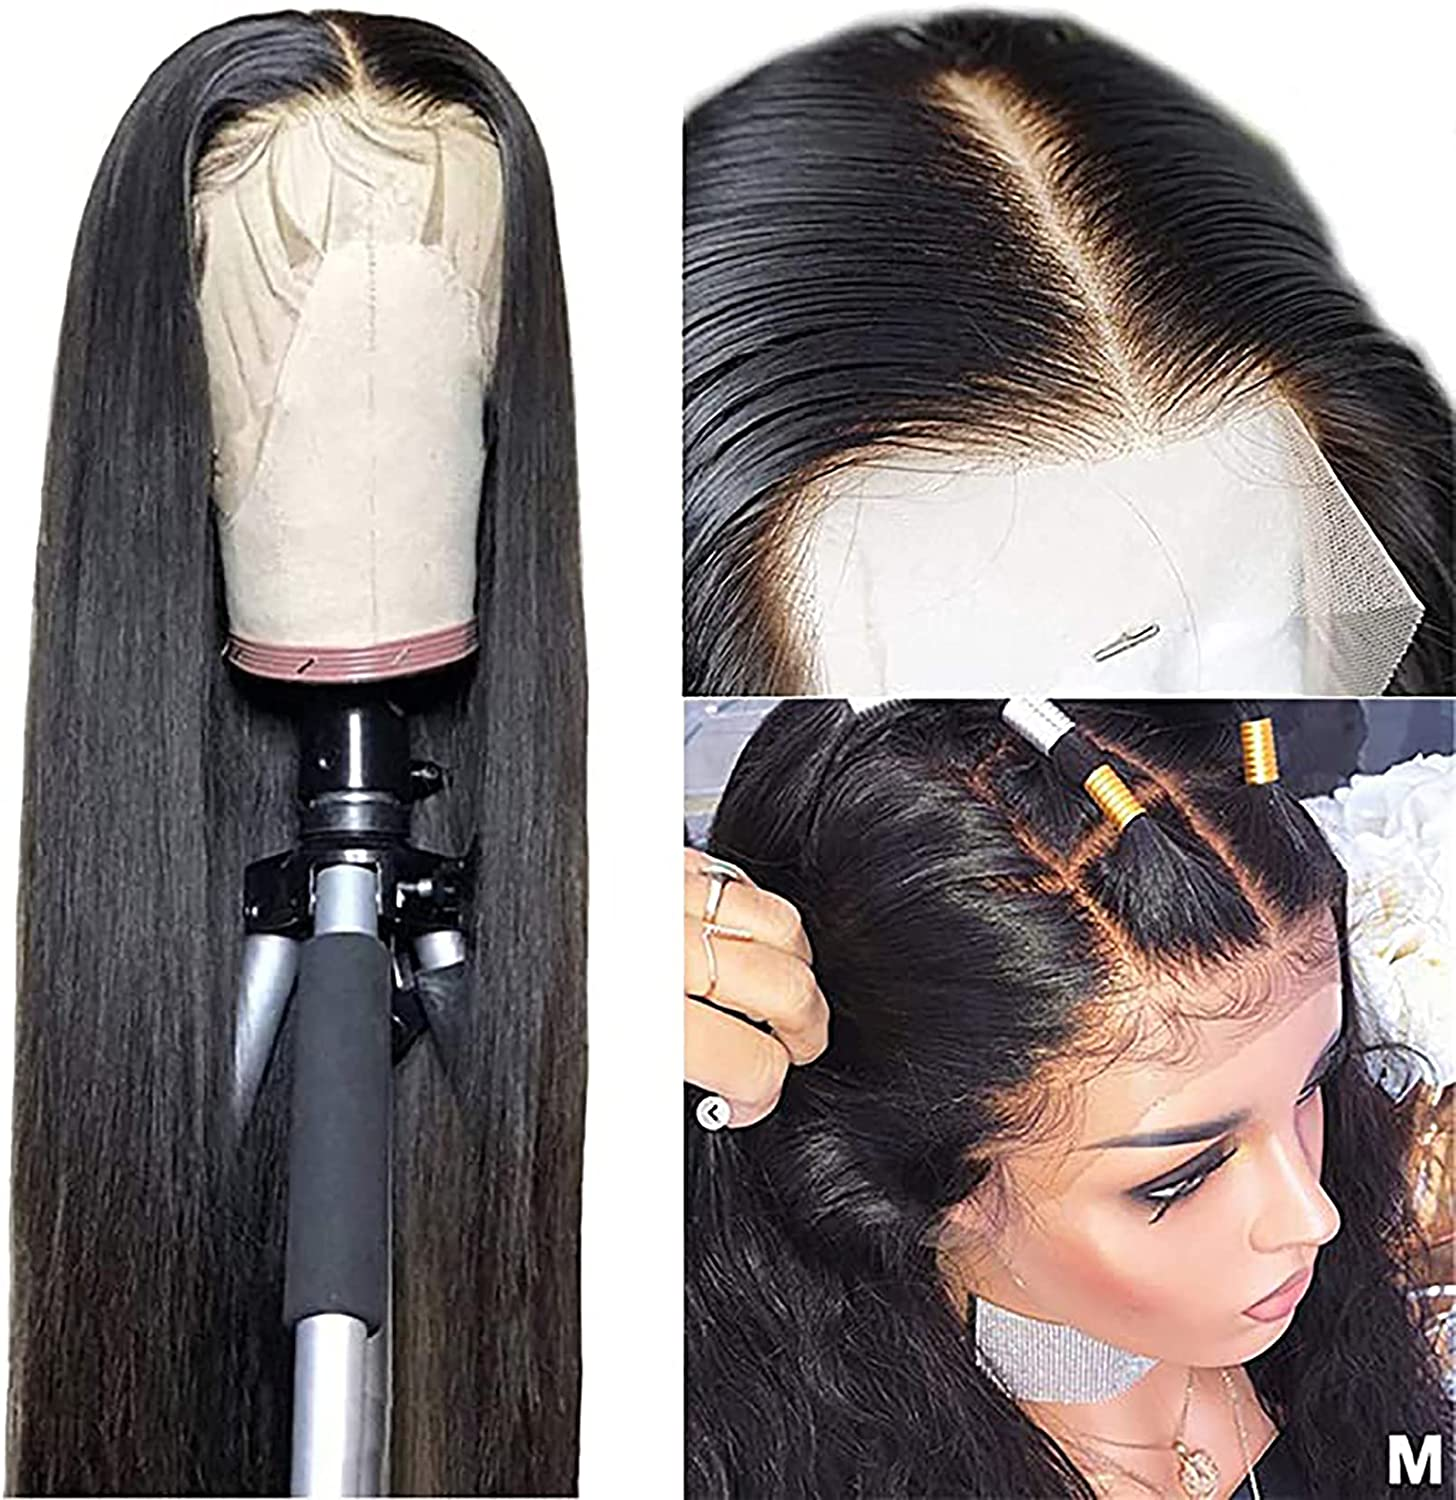 Popular shop is the lowest price challenge GETD Peruvian Max 52% OFF Straight Lace Front Fro Plucked Pre 13x4 Wigs